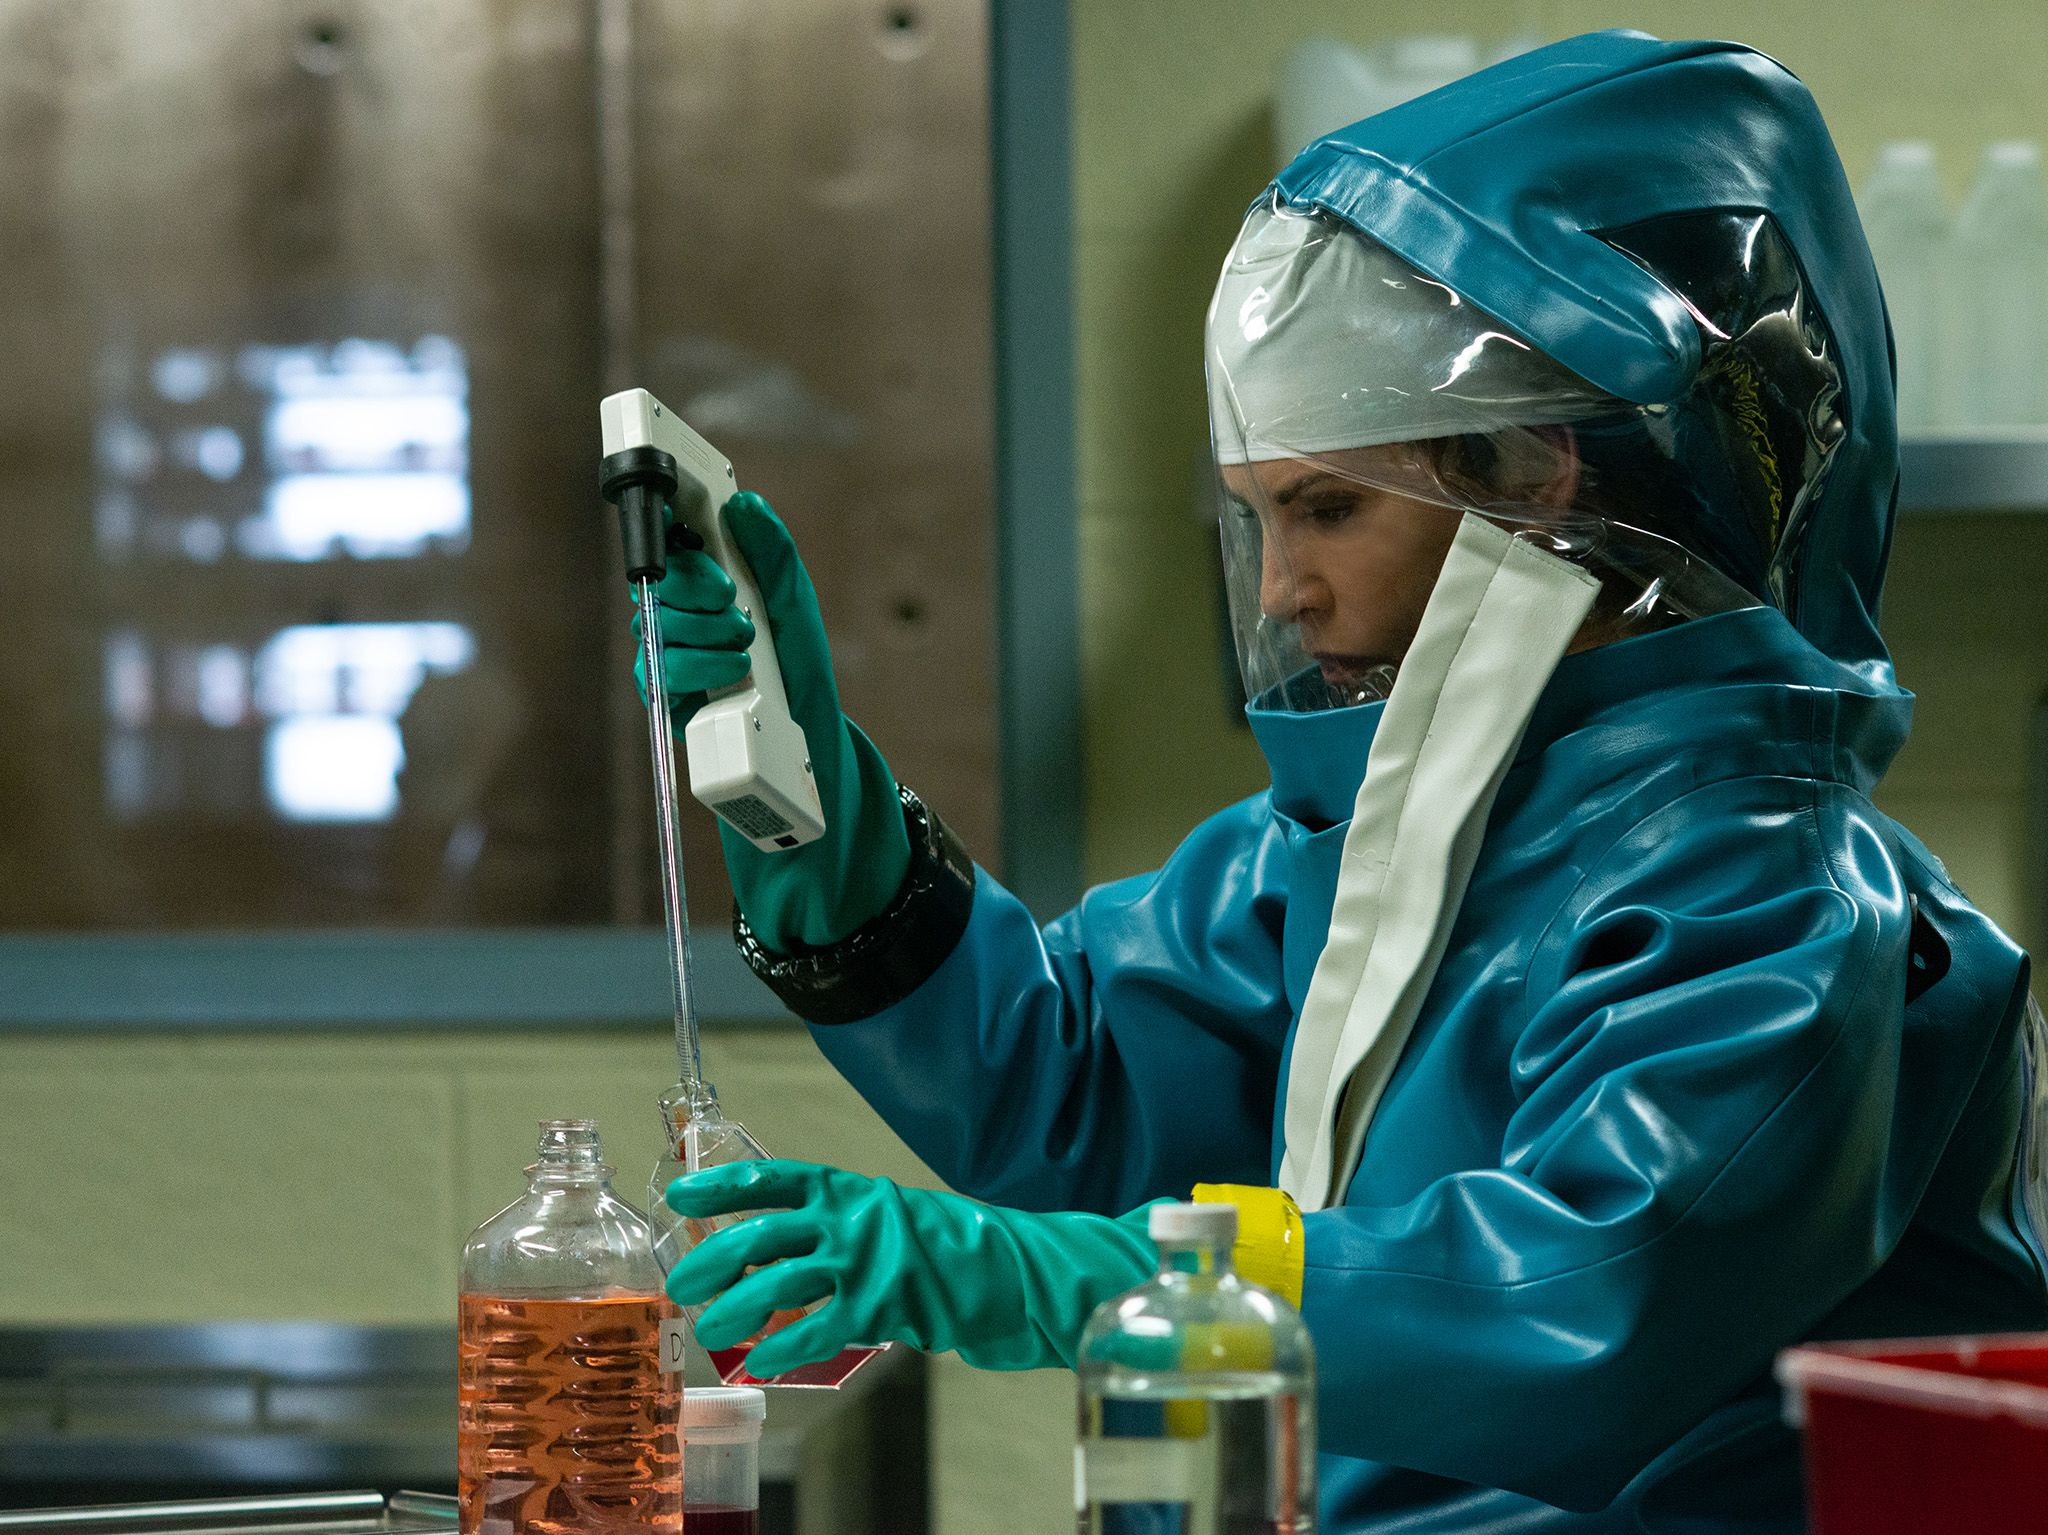 Dr. Nancy Jaax (Julianna Margulies) working in her pathology lab.  This image is from The Hot Zone. [Photo of the day - May 2019]